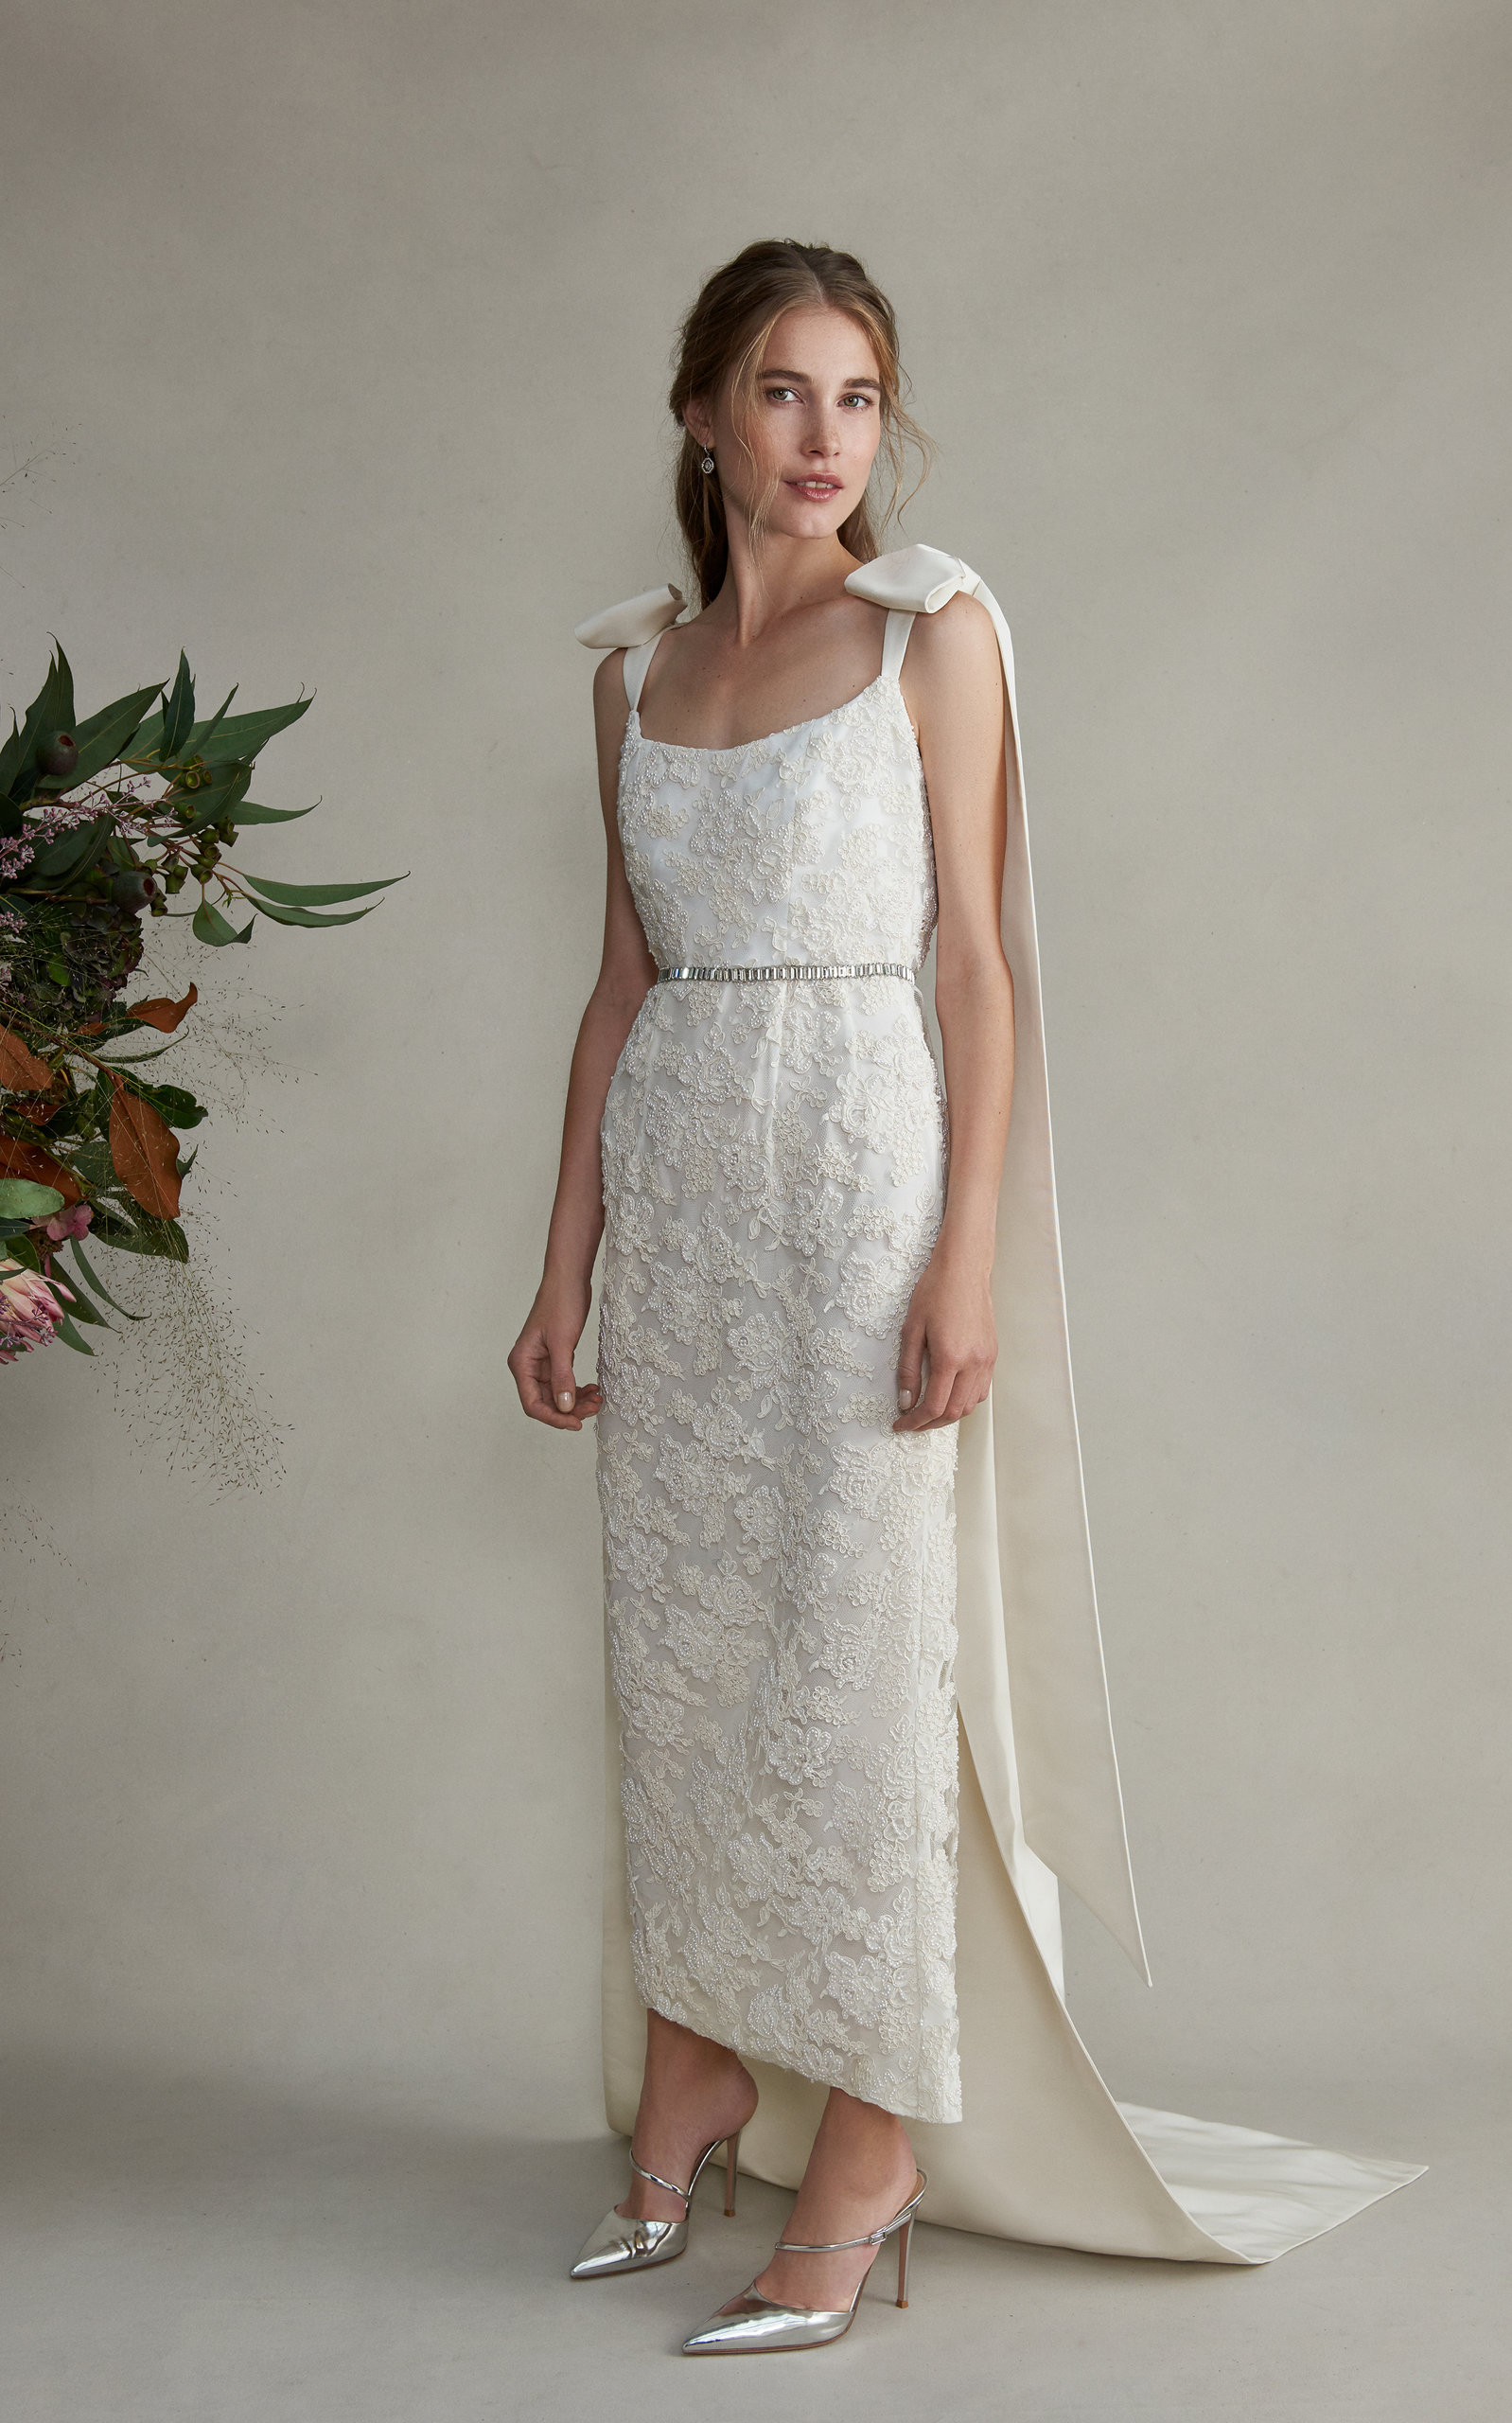 MARKARIAN Celestia Embellished Lace Dress With Train in White